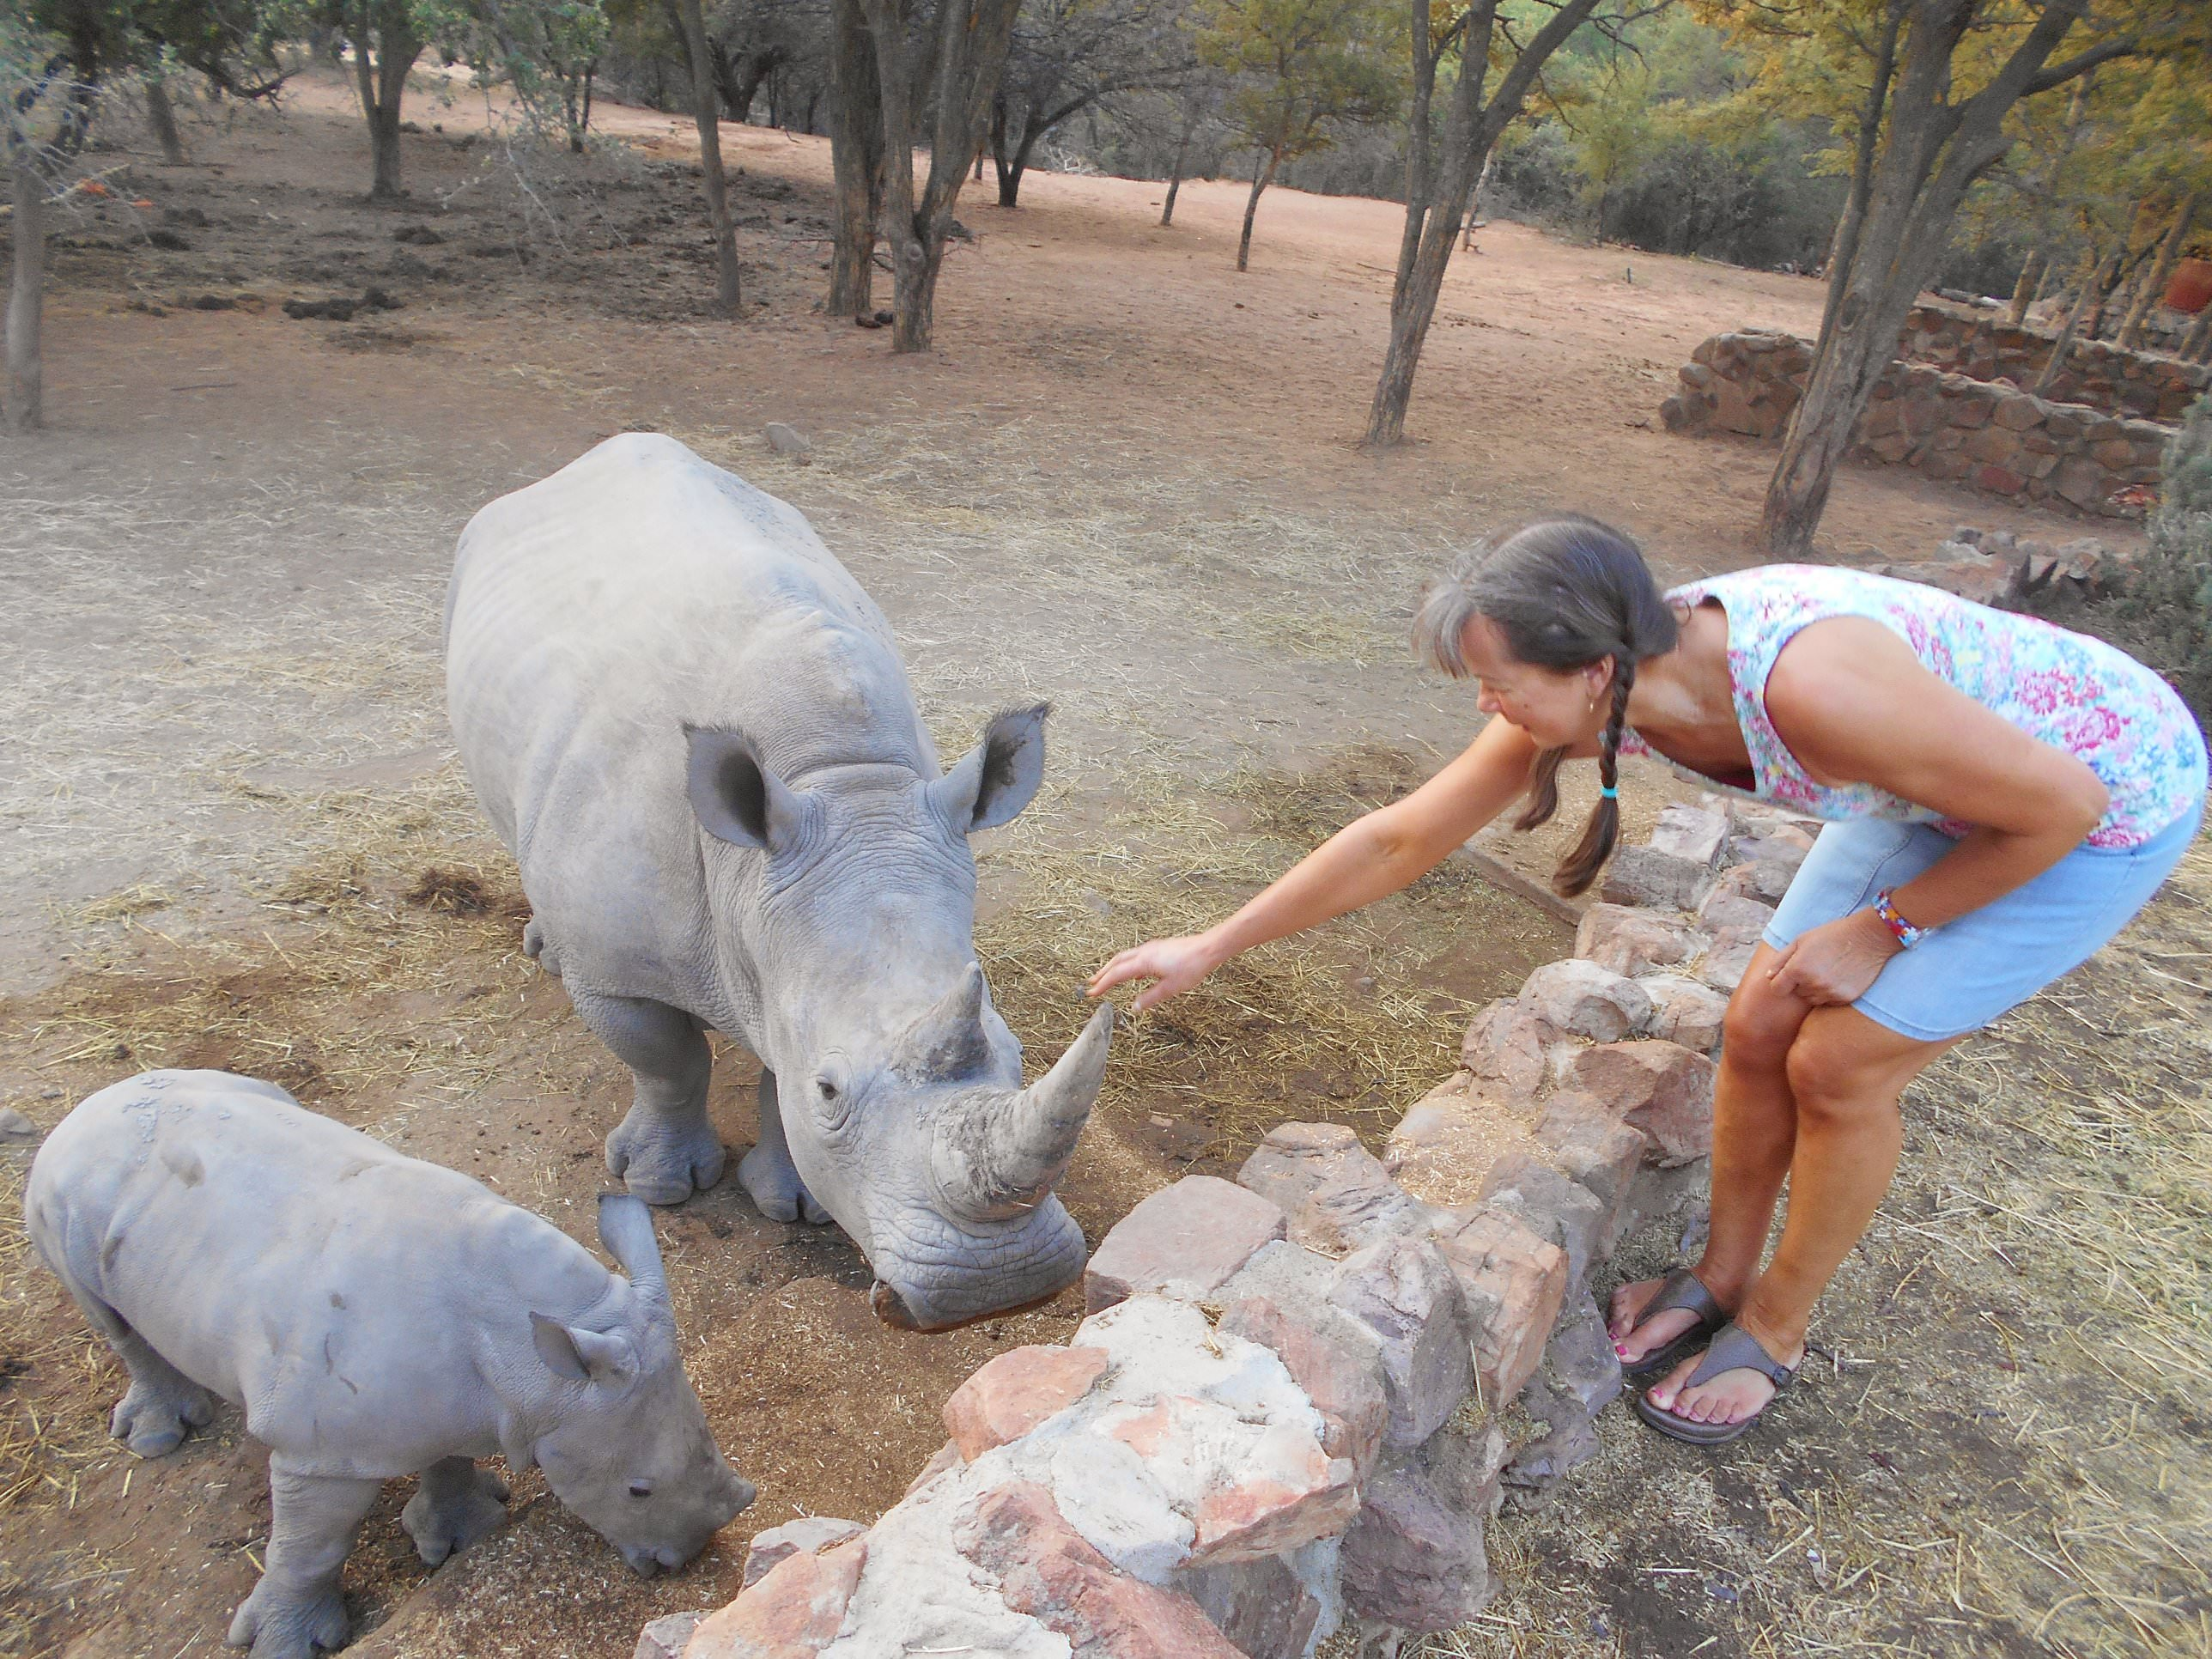 Meeting the magical white rhino up close - baby 'Scorcher' to the left